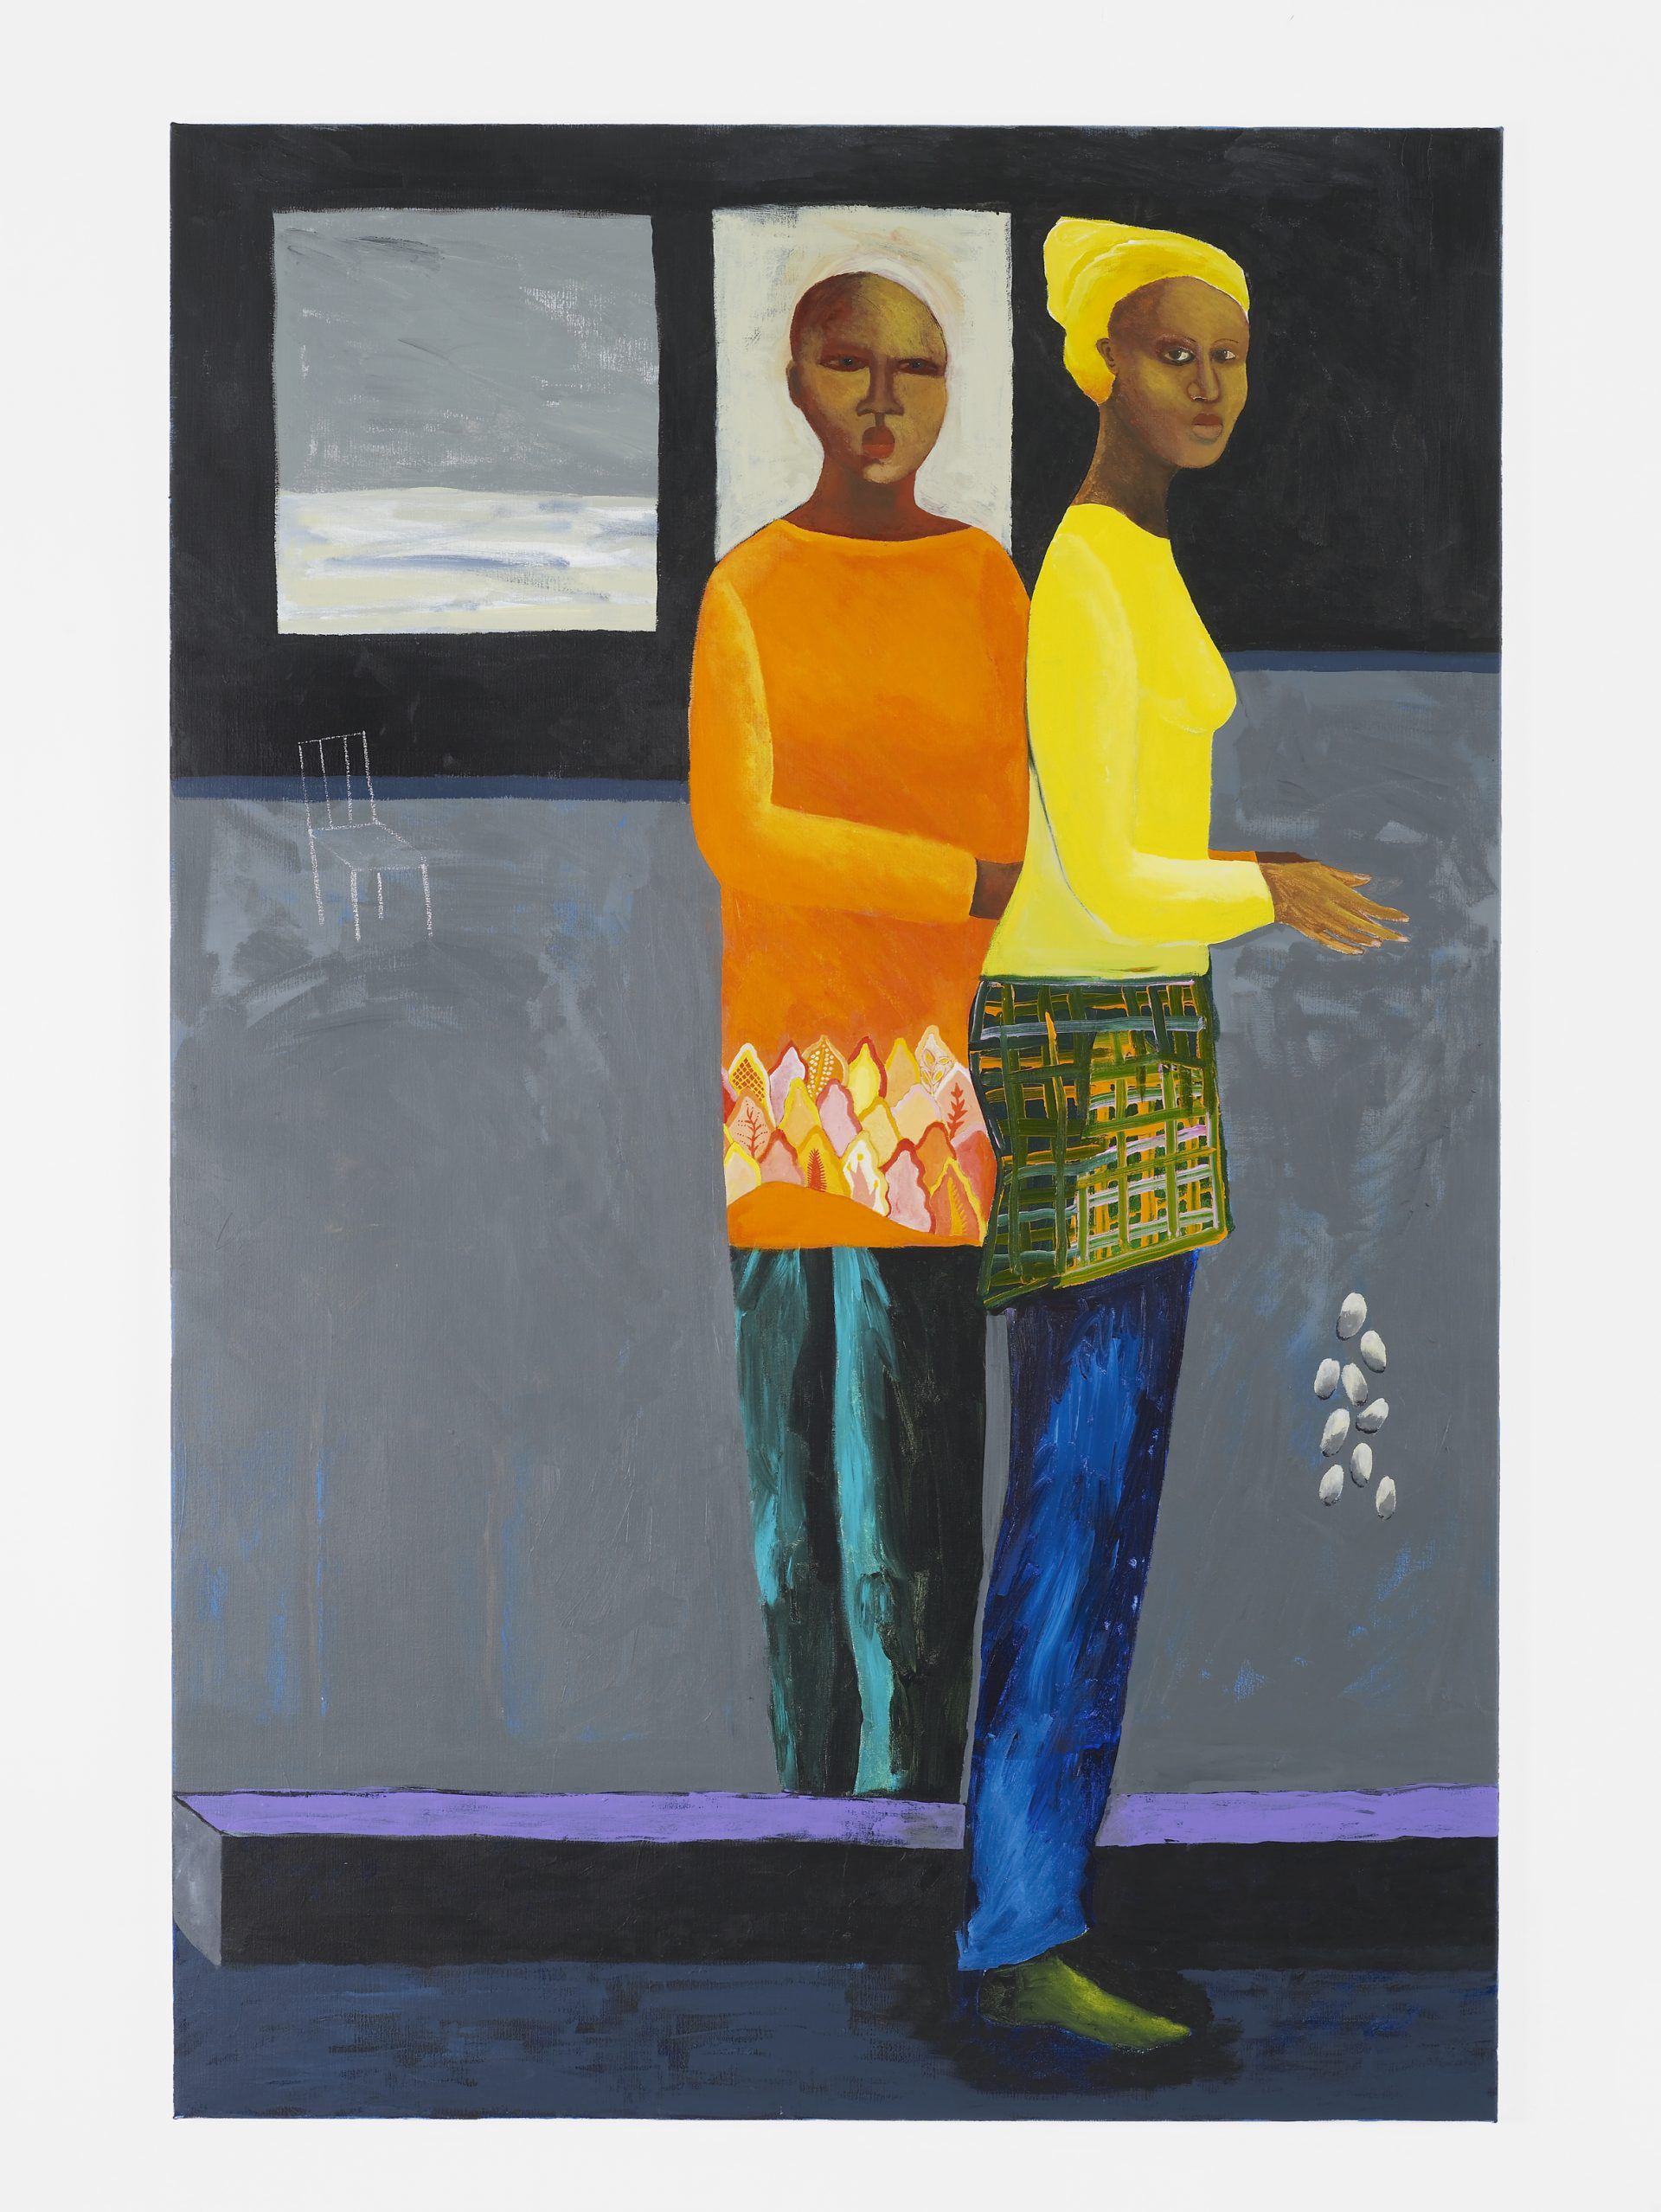 Lubaina Himid in 'Mixing It Up: Painting Today', Hayward Gallery, 9 September – 12 December 2021